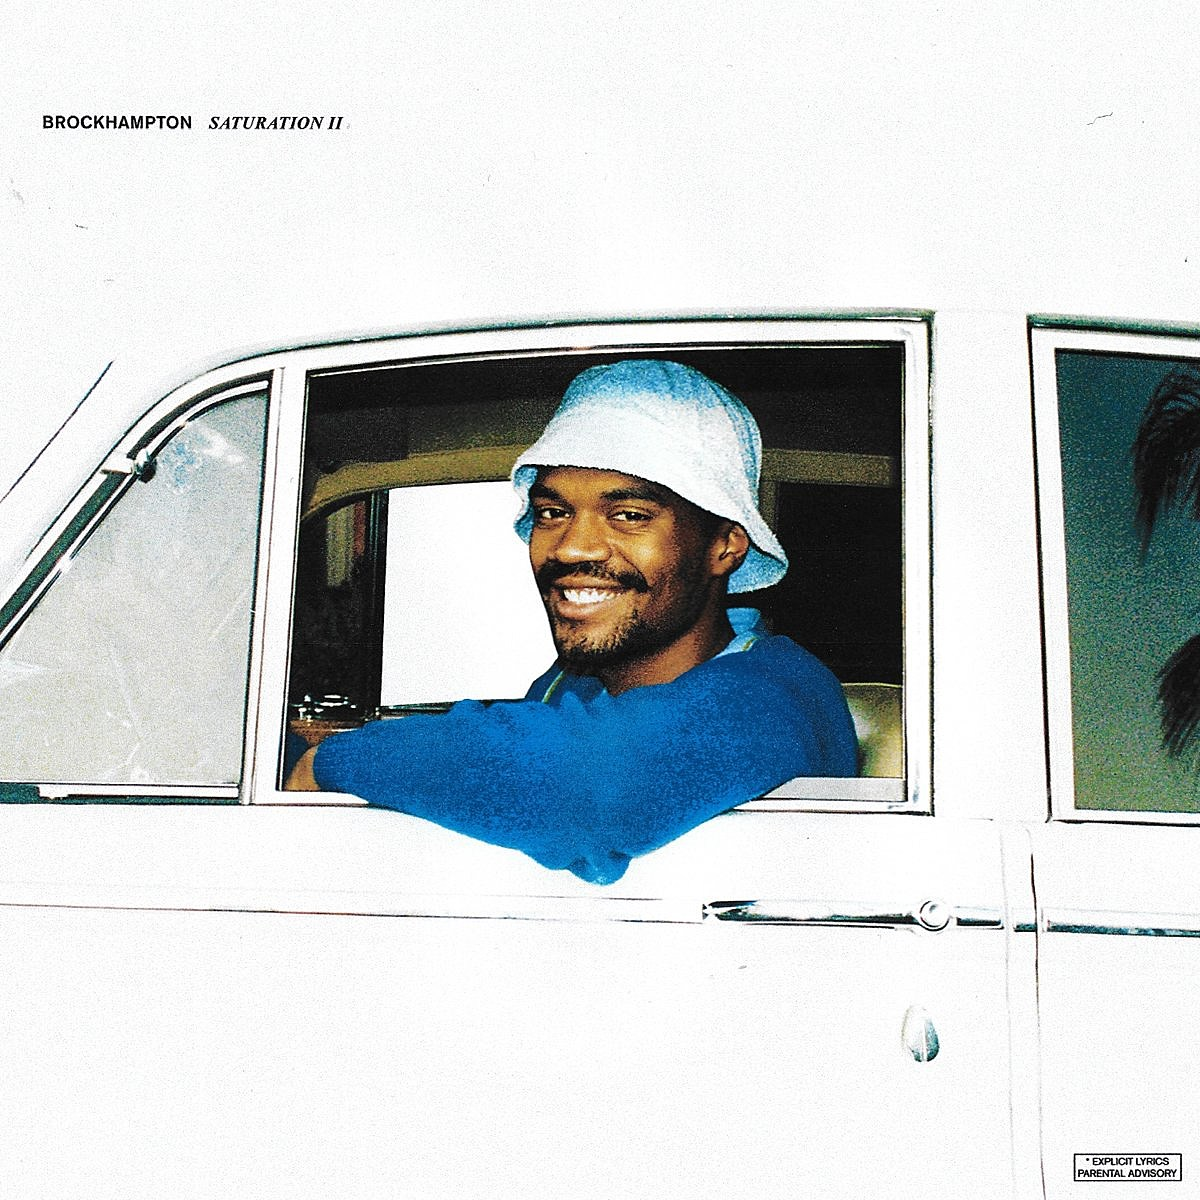 Image result for brockhampton saturation 2 release date